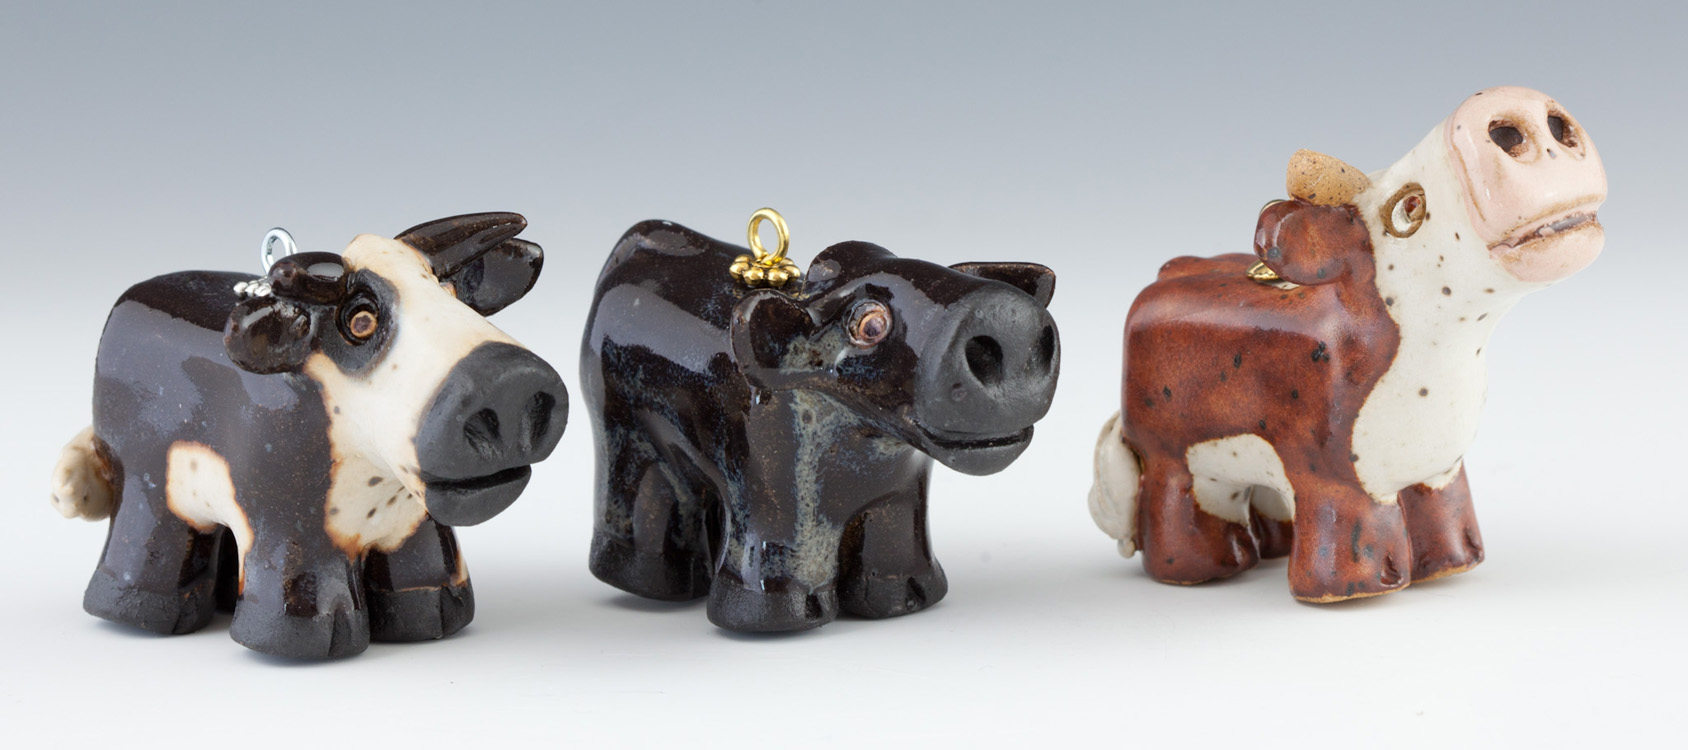 Cow Ornaments